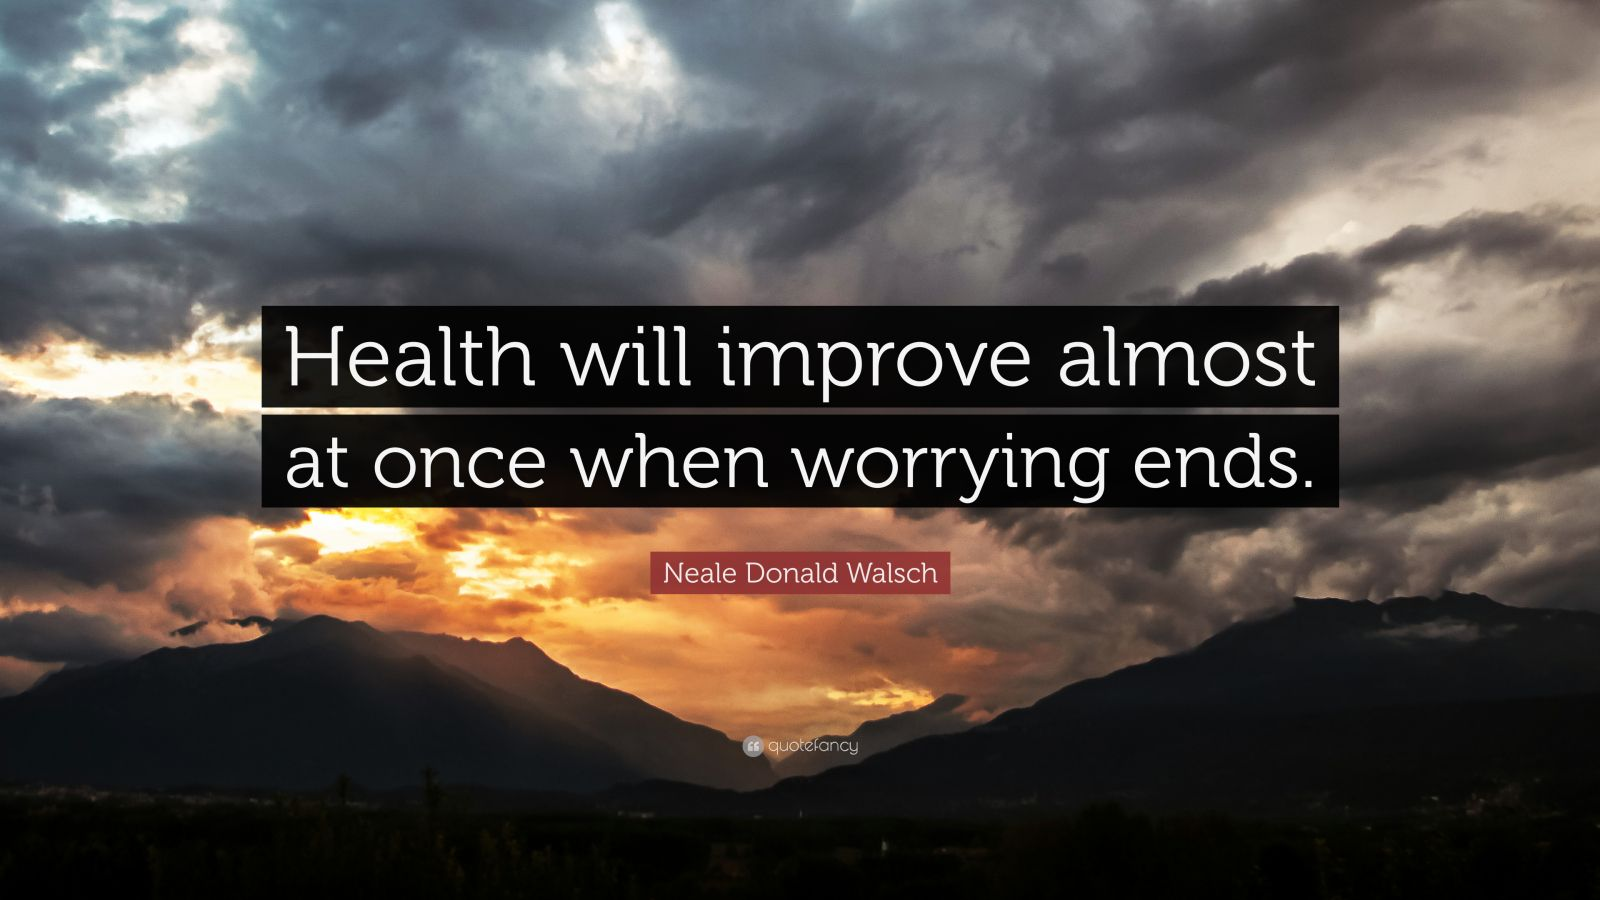 """Neale Donald Walsch Quote: """"Health will improve almost at once when worrying ends."""""""